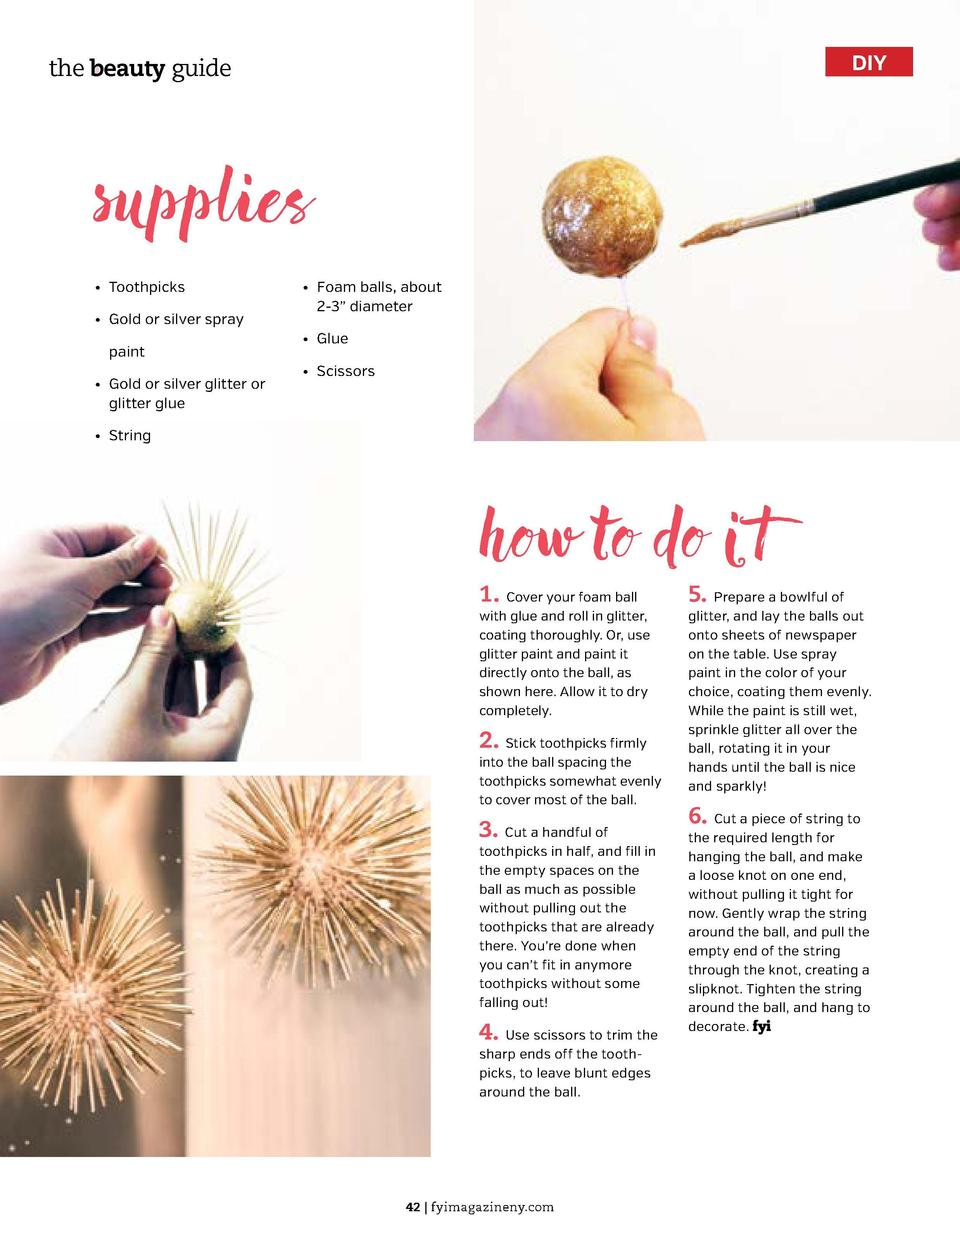 DIY  the beauty guide  supplies      Toothpicks      Gold or silver   spray paint      Gold or silver   glitter or glitter...